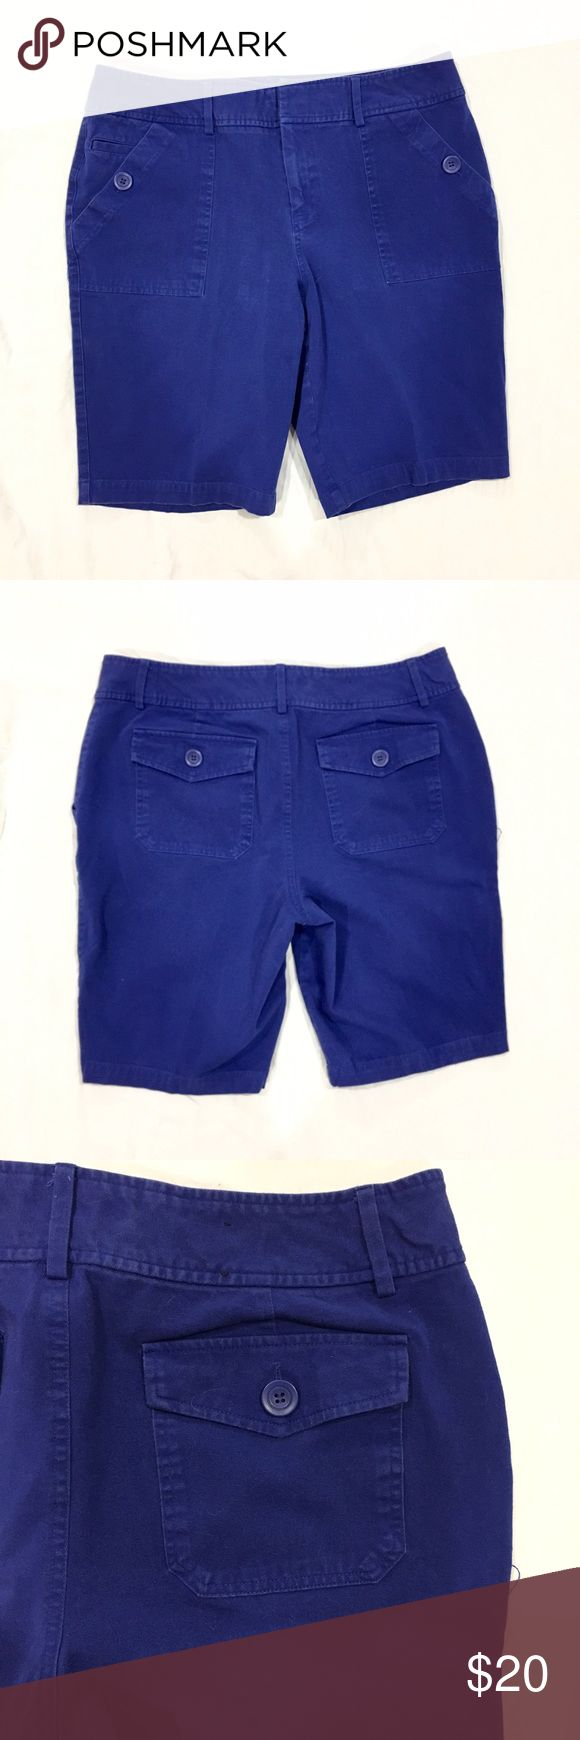 "INC blue Bermuda shorts Royal blue colored Bermuda shorts. Has buttoned pockets in the front and the back. Material content is 94% cotton and 6% spandex. Length: 19"", inseam: 10 1/2"", rise: 10"", waist: 17"" across. In great condition. Feel free to make me a reasonable offer 💕 INC International Concepts Shorts Bermudas"